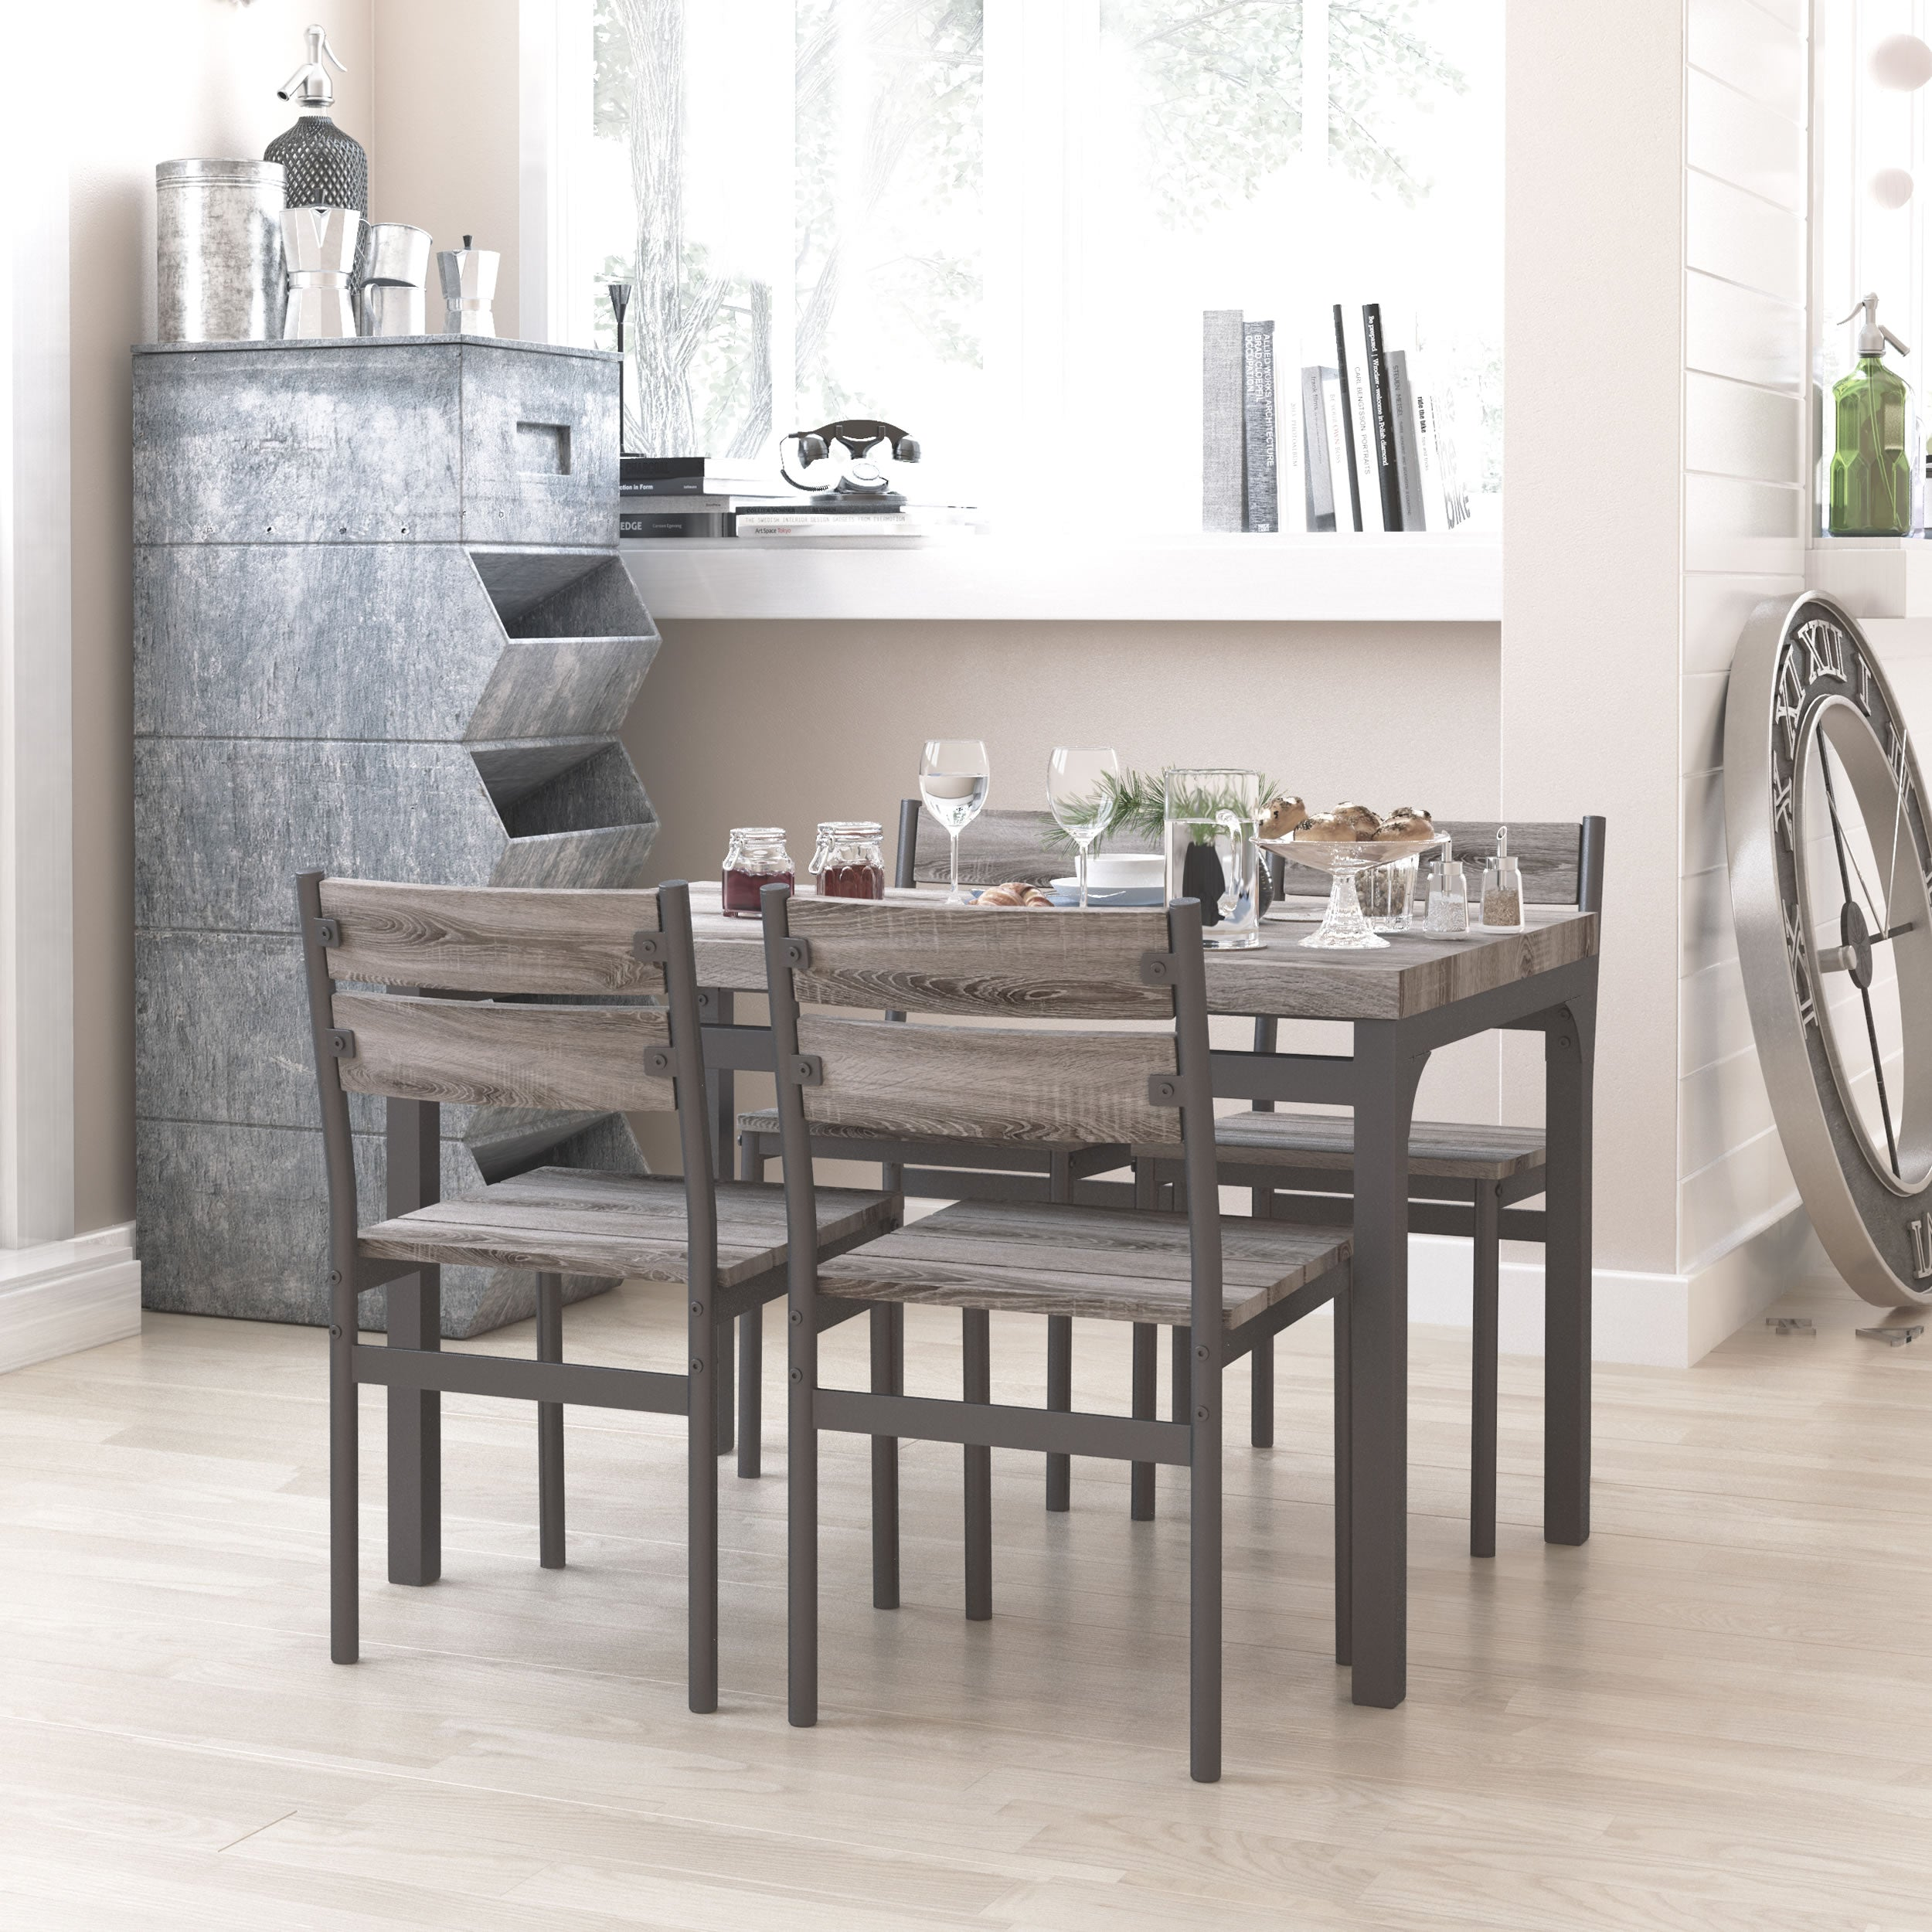 Picture of: Zenvida 5 Piece Dining Set Breakfast Nook Table And 4 Chairs Rusti Roadbikeoutlet